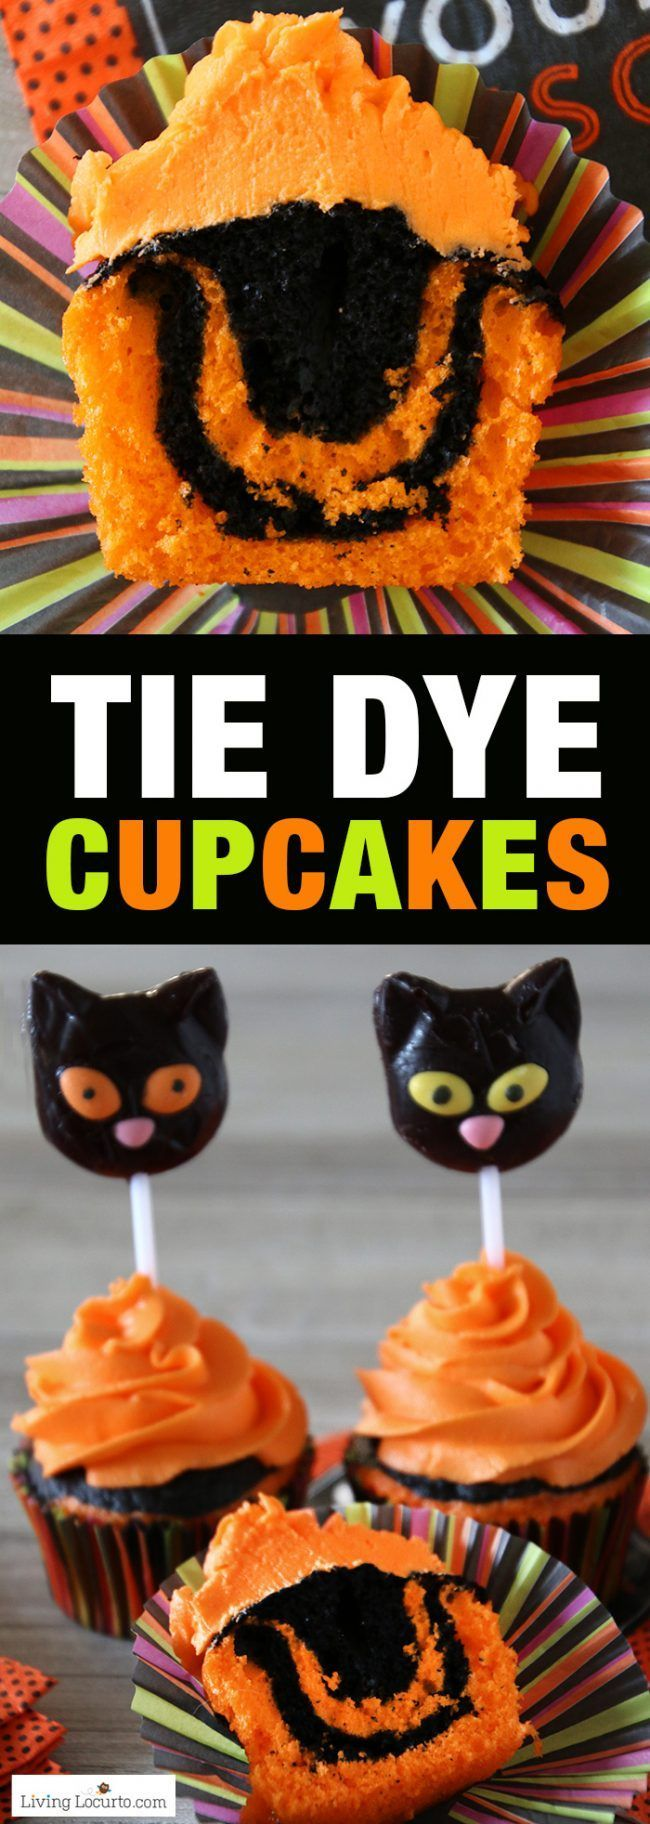 Halloween Cupcakes an Easy Tie Dye Cake Recipe. Turn your Halloween cupcakes into the most spooktacular treats by making tie dyed cake. Orange and black tie dye cupcakes with black cat lollipops.